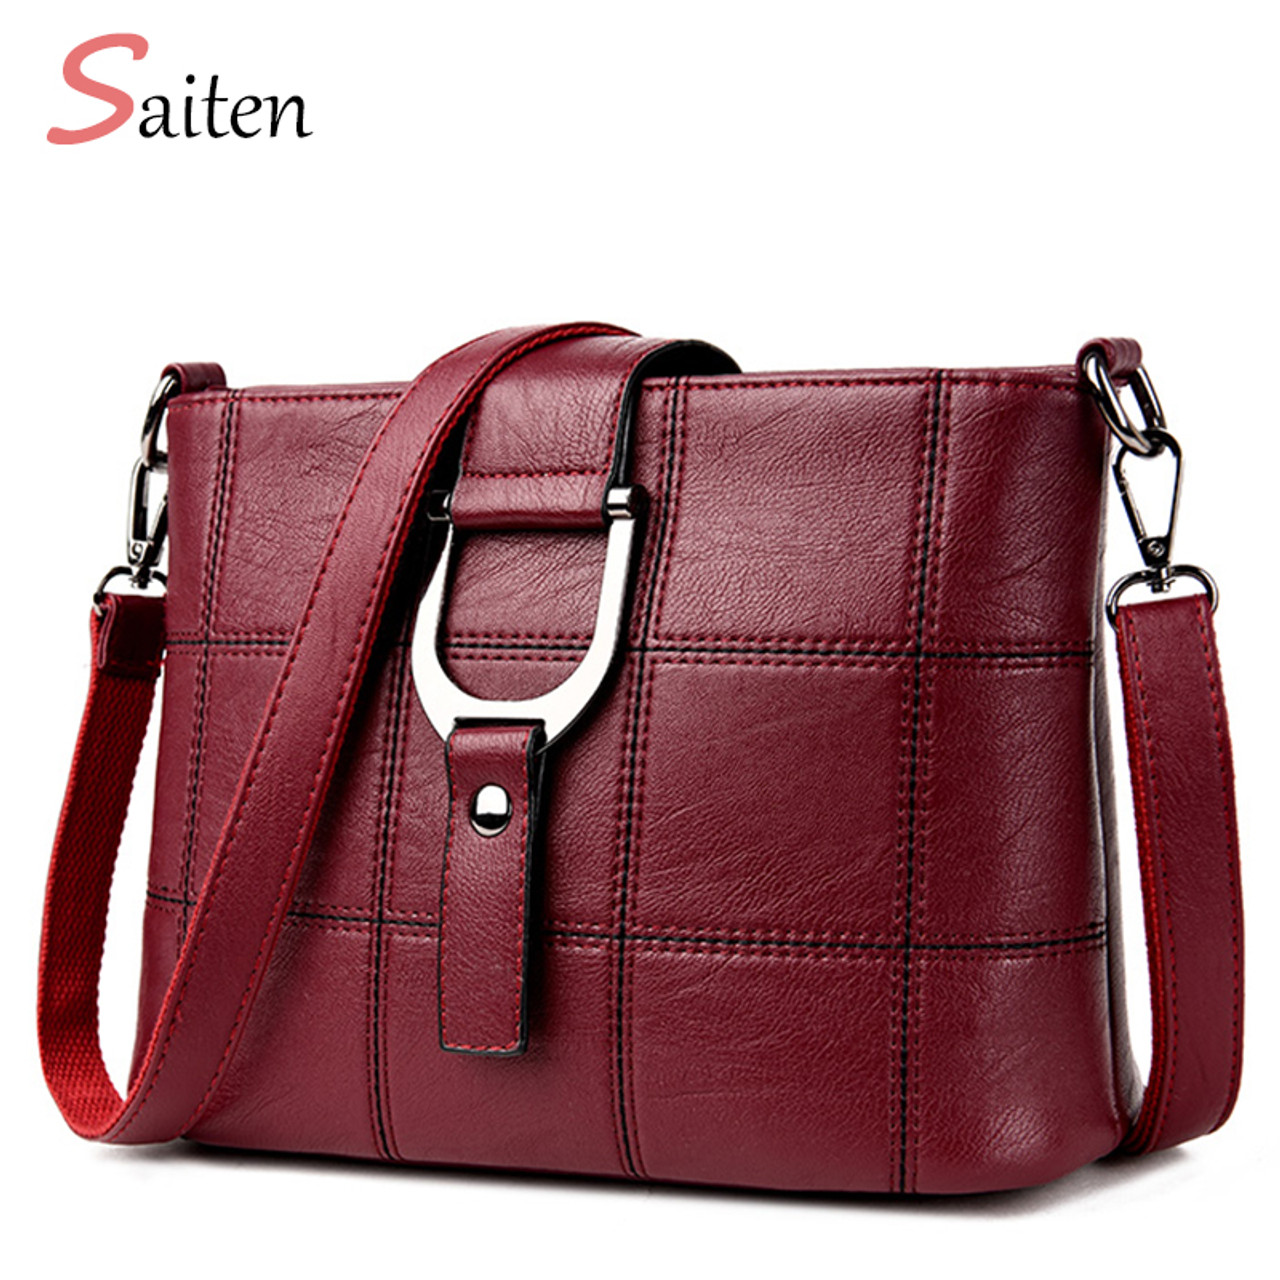 Top-handle Bags Women's Bags Active New Messenger Bags Large Capacity Women Shoulder Bags Female Trunk Tote Bolsos Luxury Handbags Women Bags Designer 2019